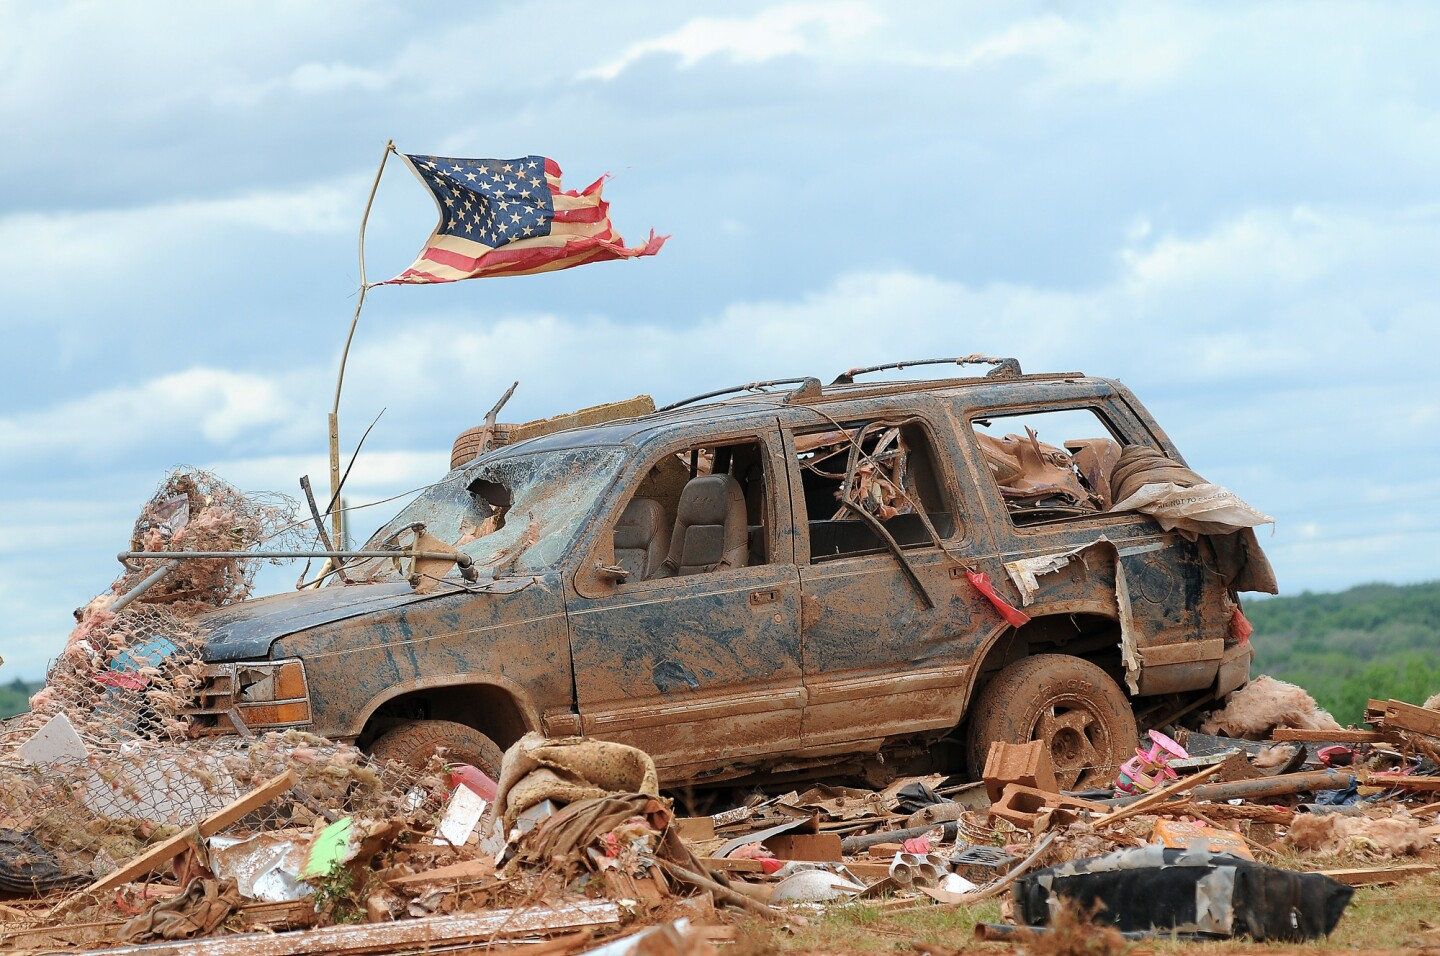 A tattered American flag flies over a vehicle where two girls, 5 and 7, were found dead after a severe thunderstorm spawned a massive tornado at Hideaway Mobile Home Villa in Woodward, Okla. Residents of several states scoured through the wreckage of battered homes and businesses Sunday, after dozens of tornadoes blitzed the Midwest and Plains Saturday, leaving six dead and 29 injured.